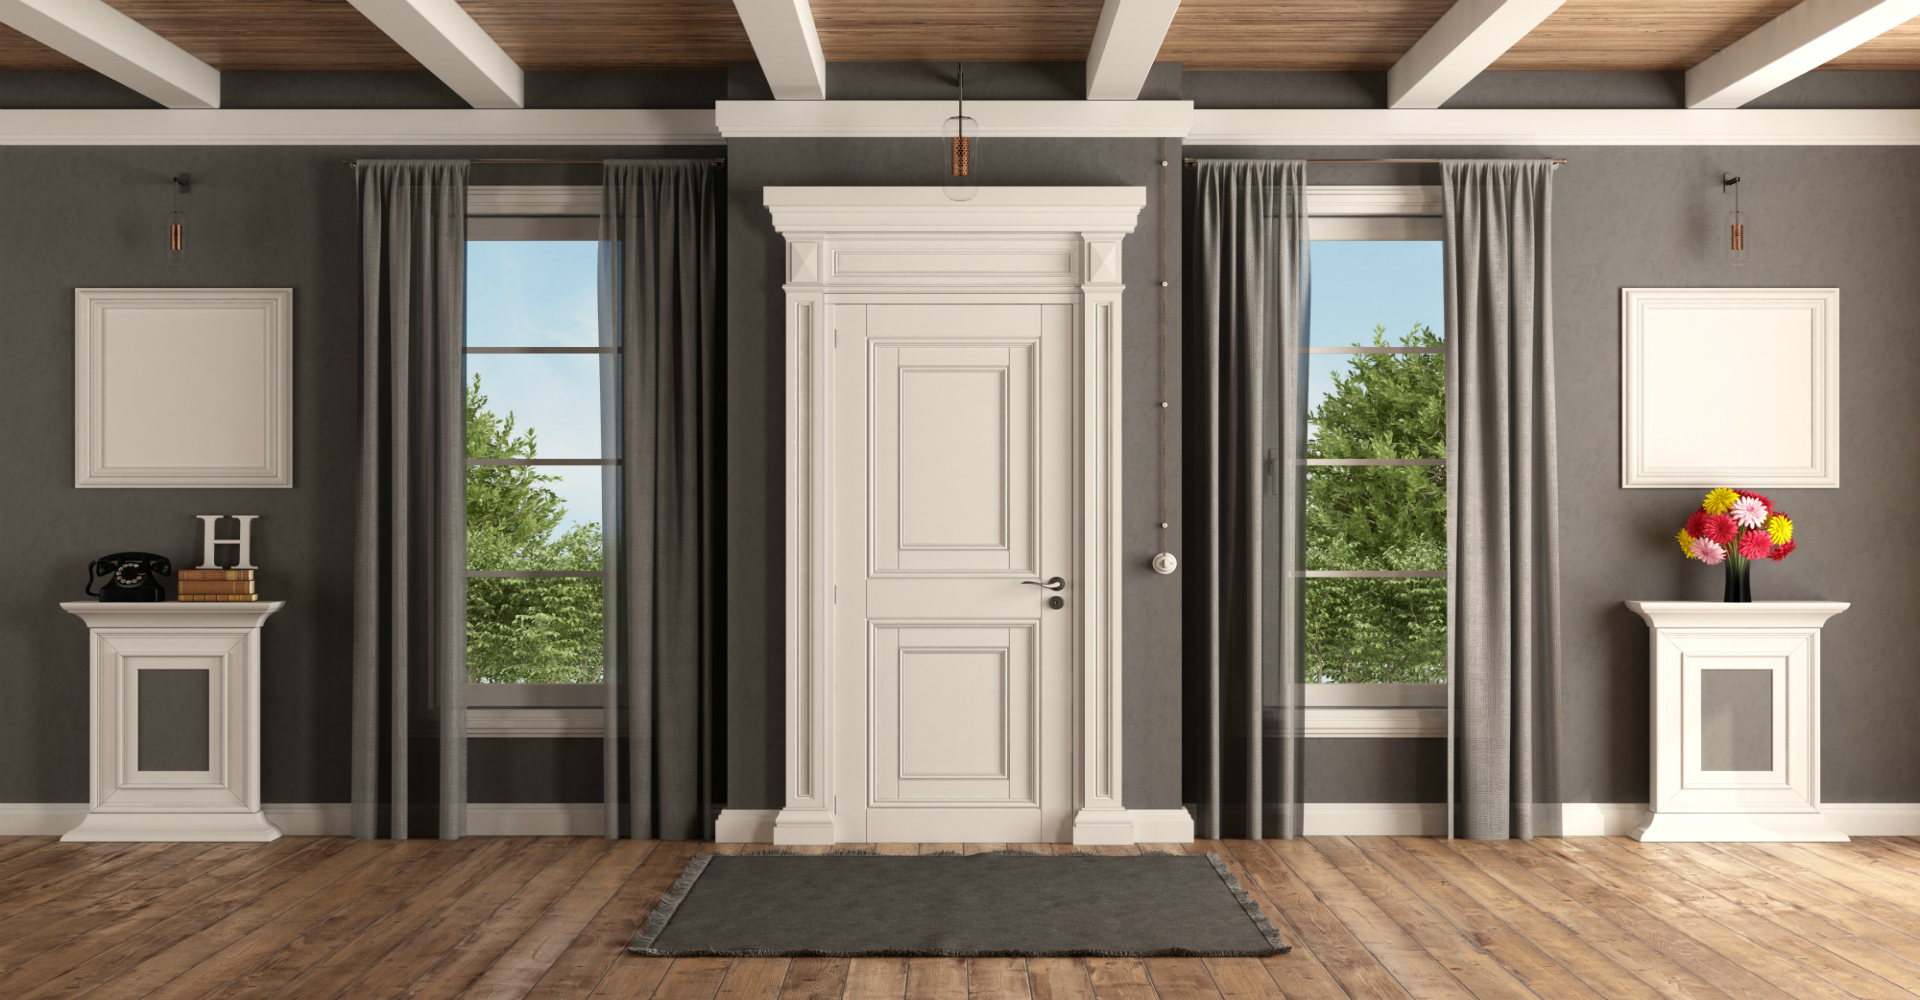 Fibergl Vs Wood Entry Doors Which Is Better